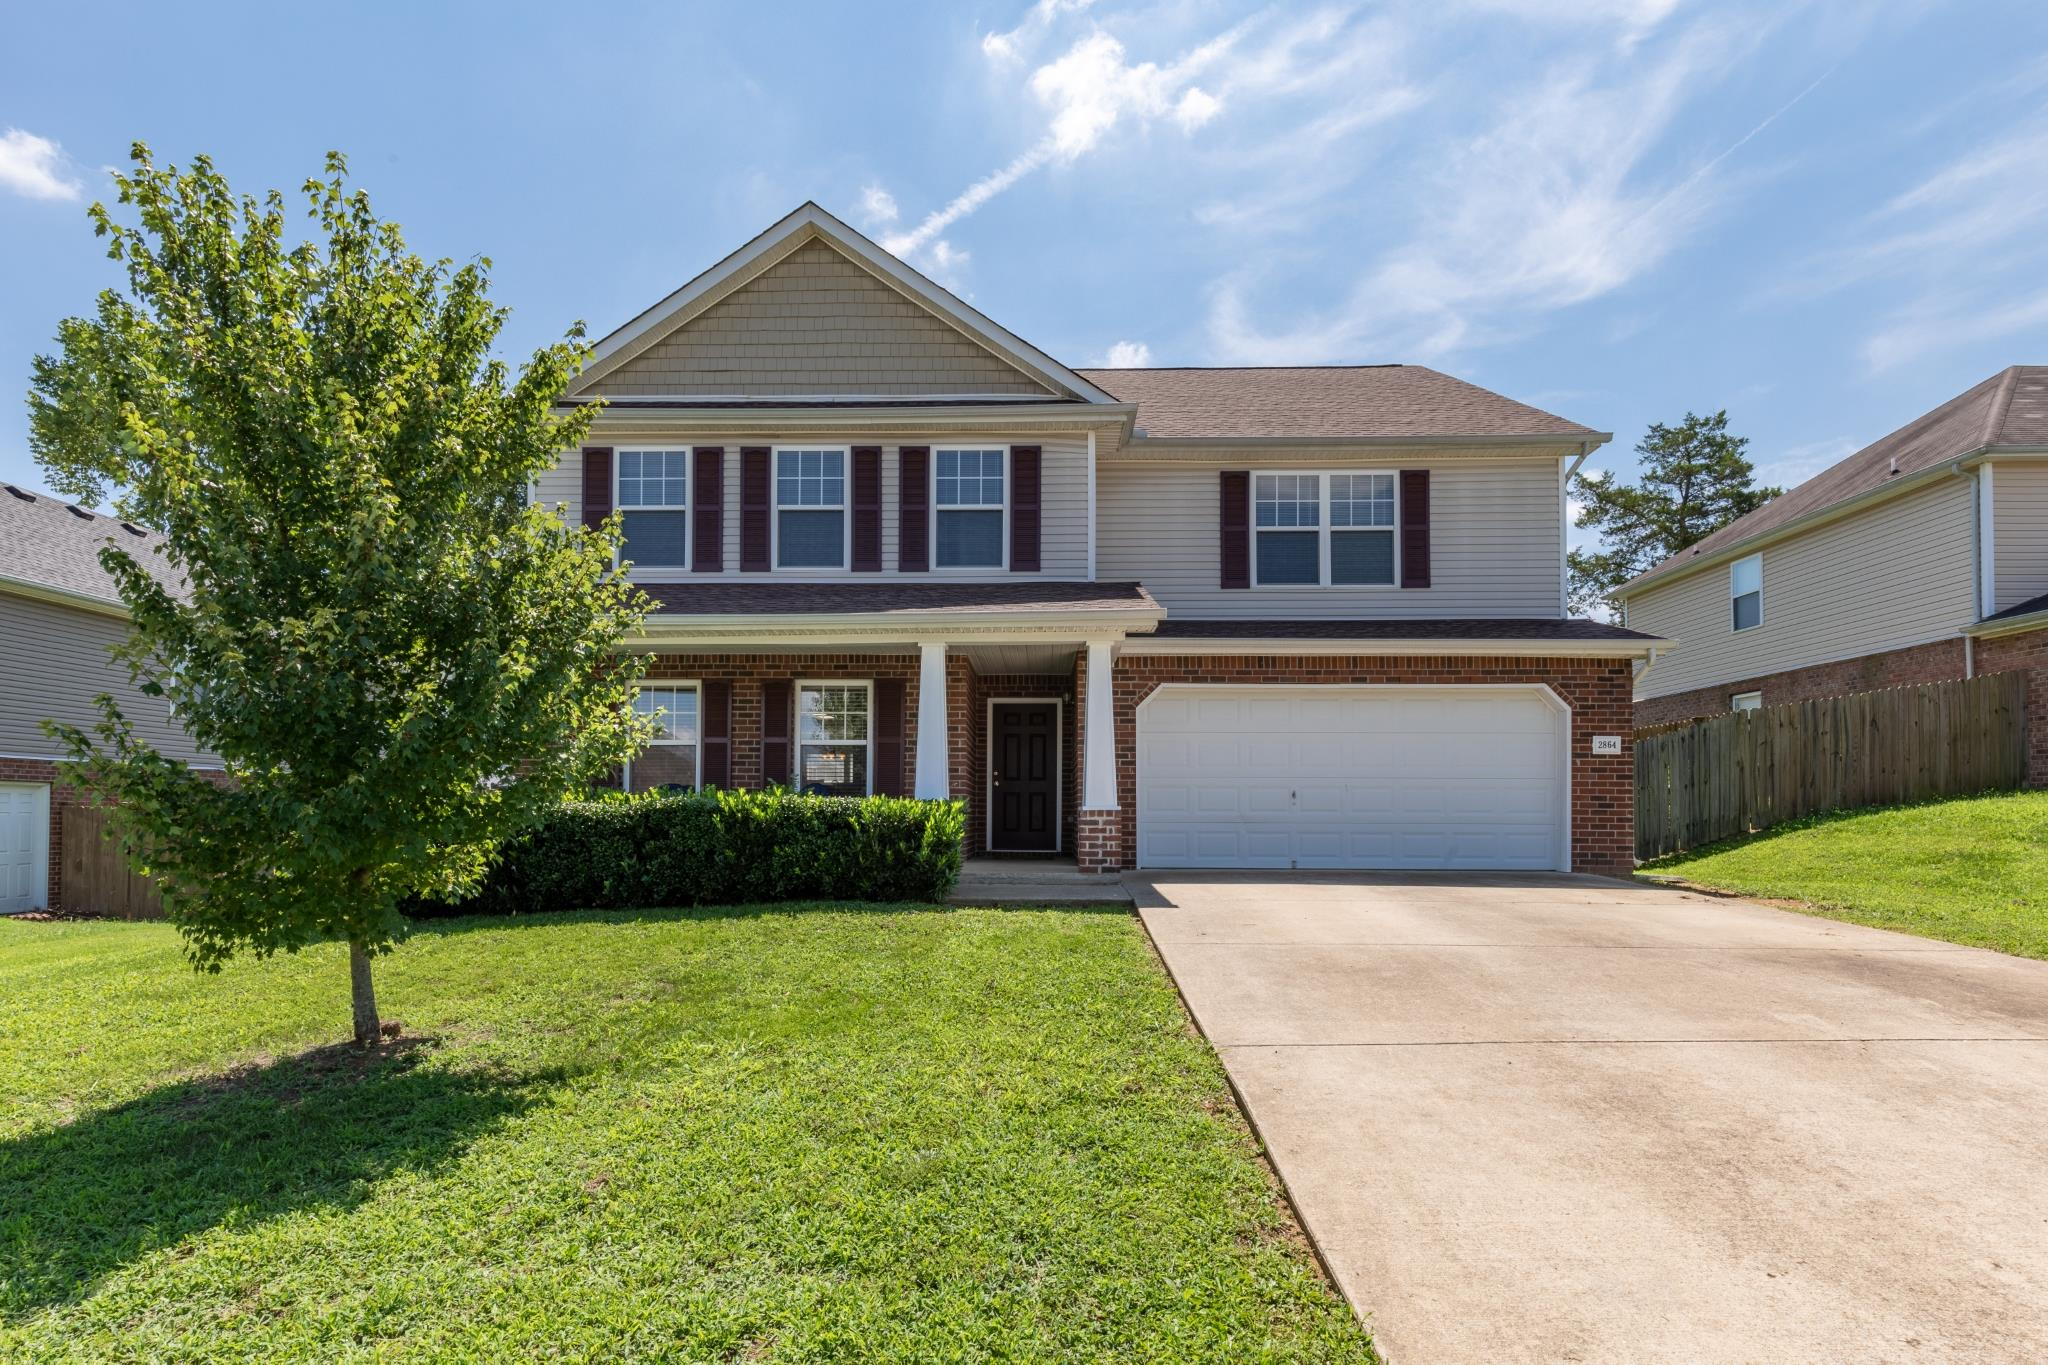 2864 Park Knoll Dr, Mount Juliet in Wilson County County, TN 37122 Home for Sale